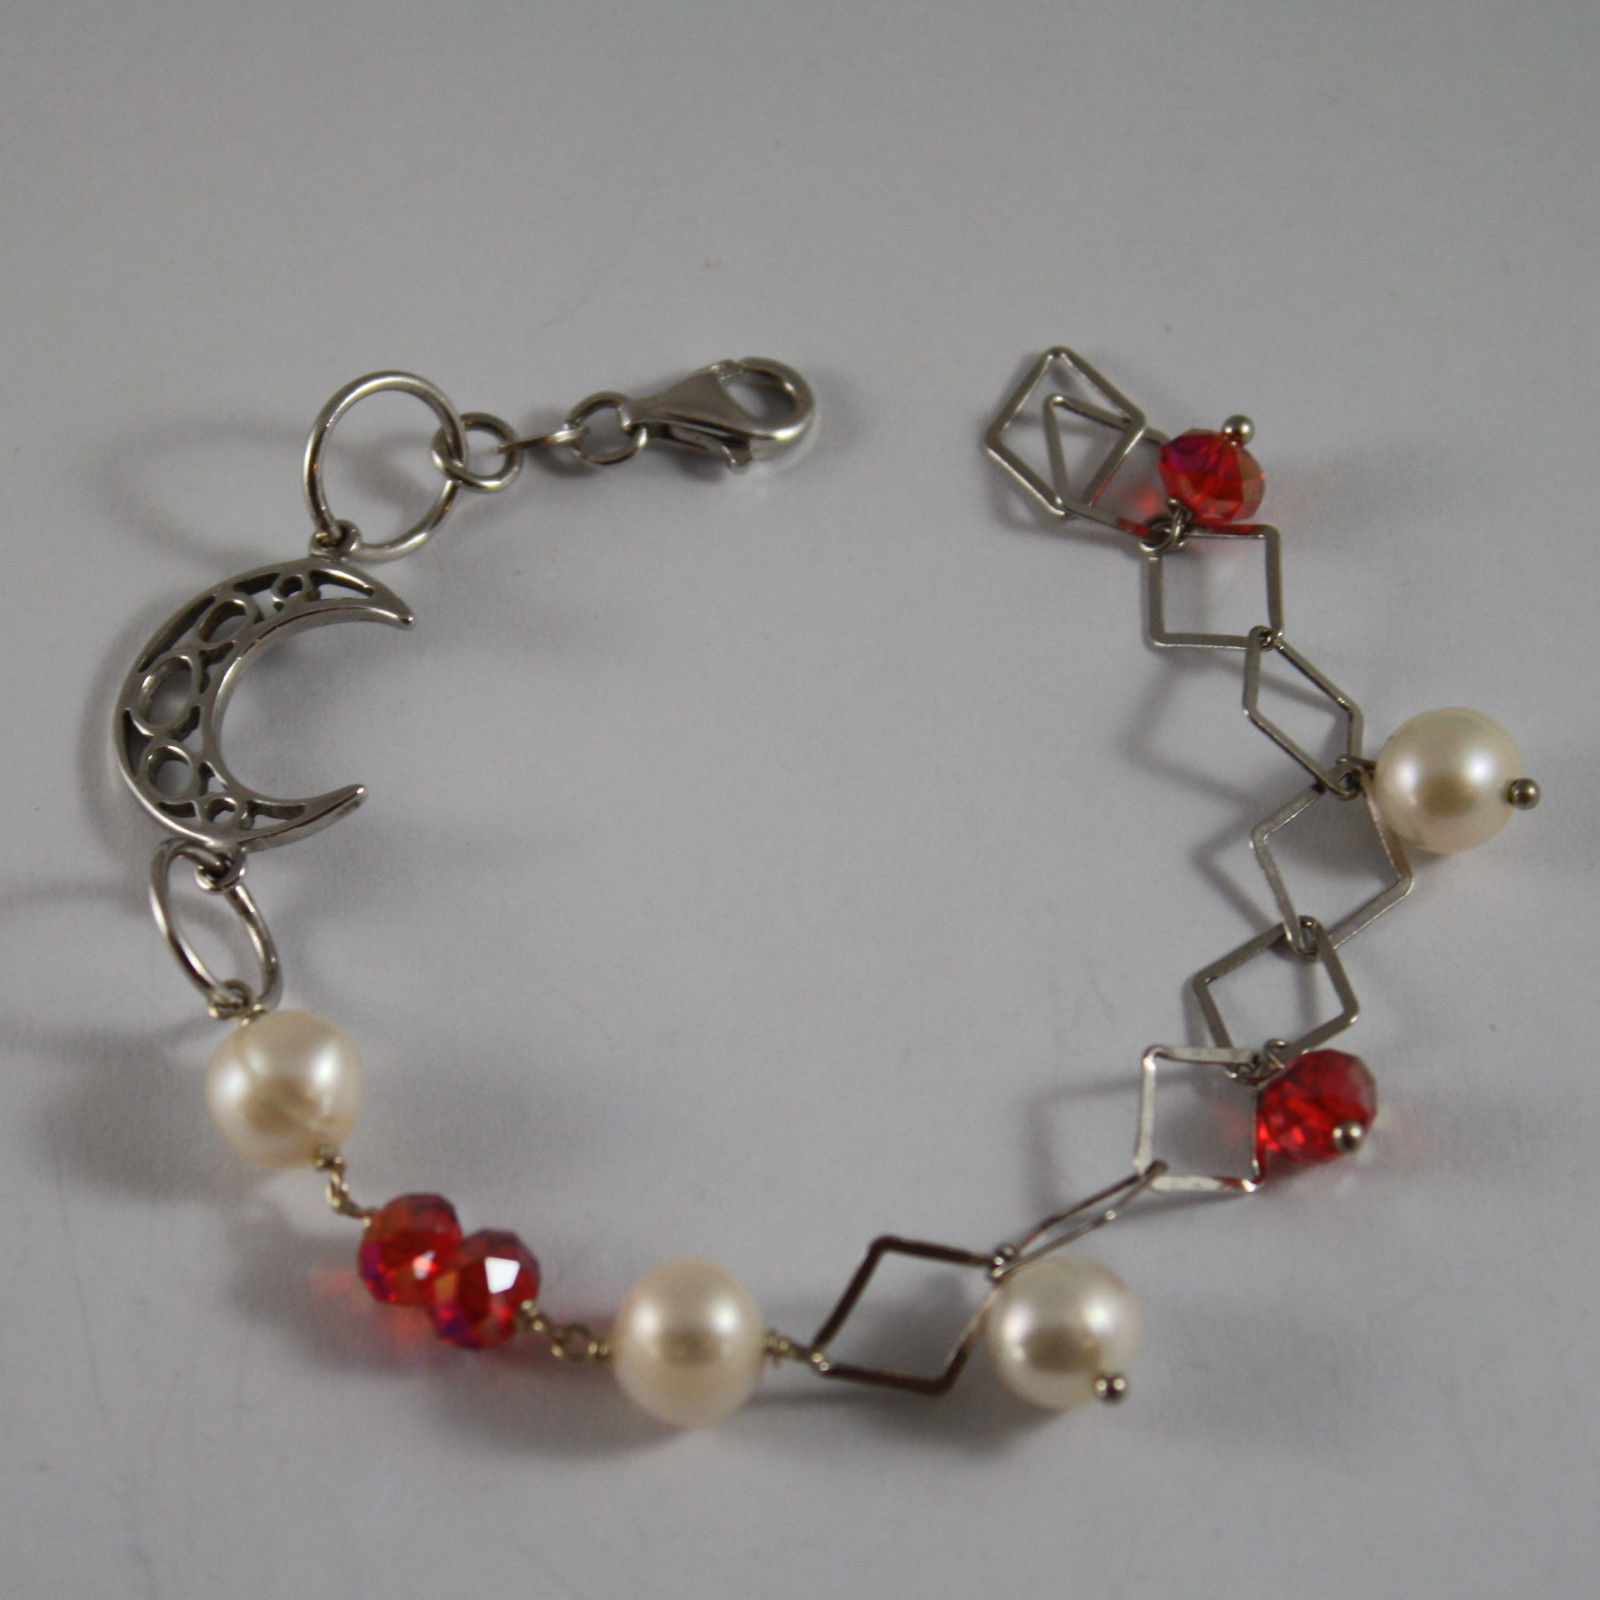 .925 RHODIUM SILVER BRACELET WITH RED CRYSTALS, WHITE PEARLS AND MOON